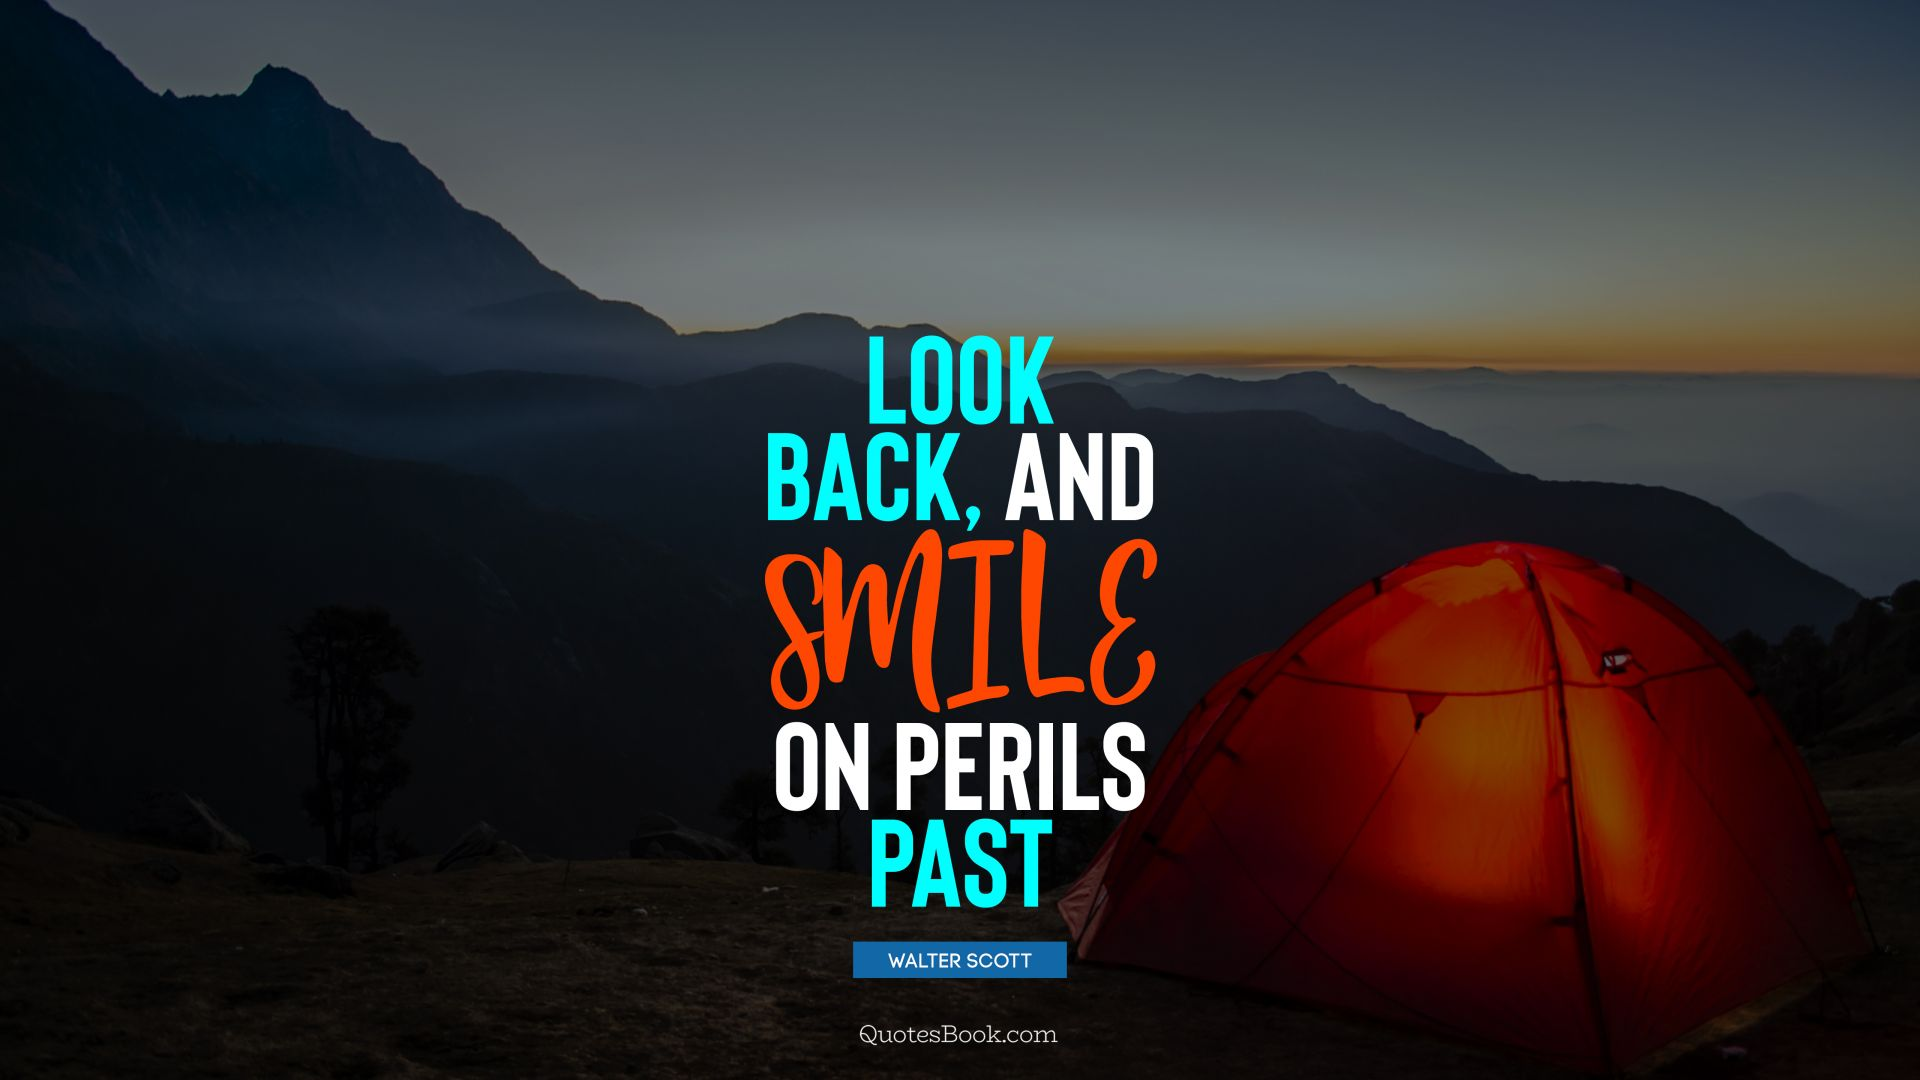 Look back, and smile on perils past. - Quote by Walter Scott